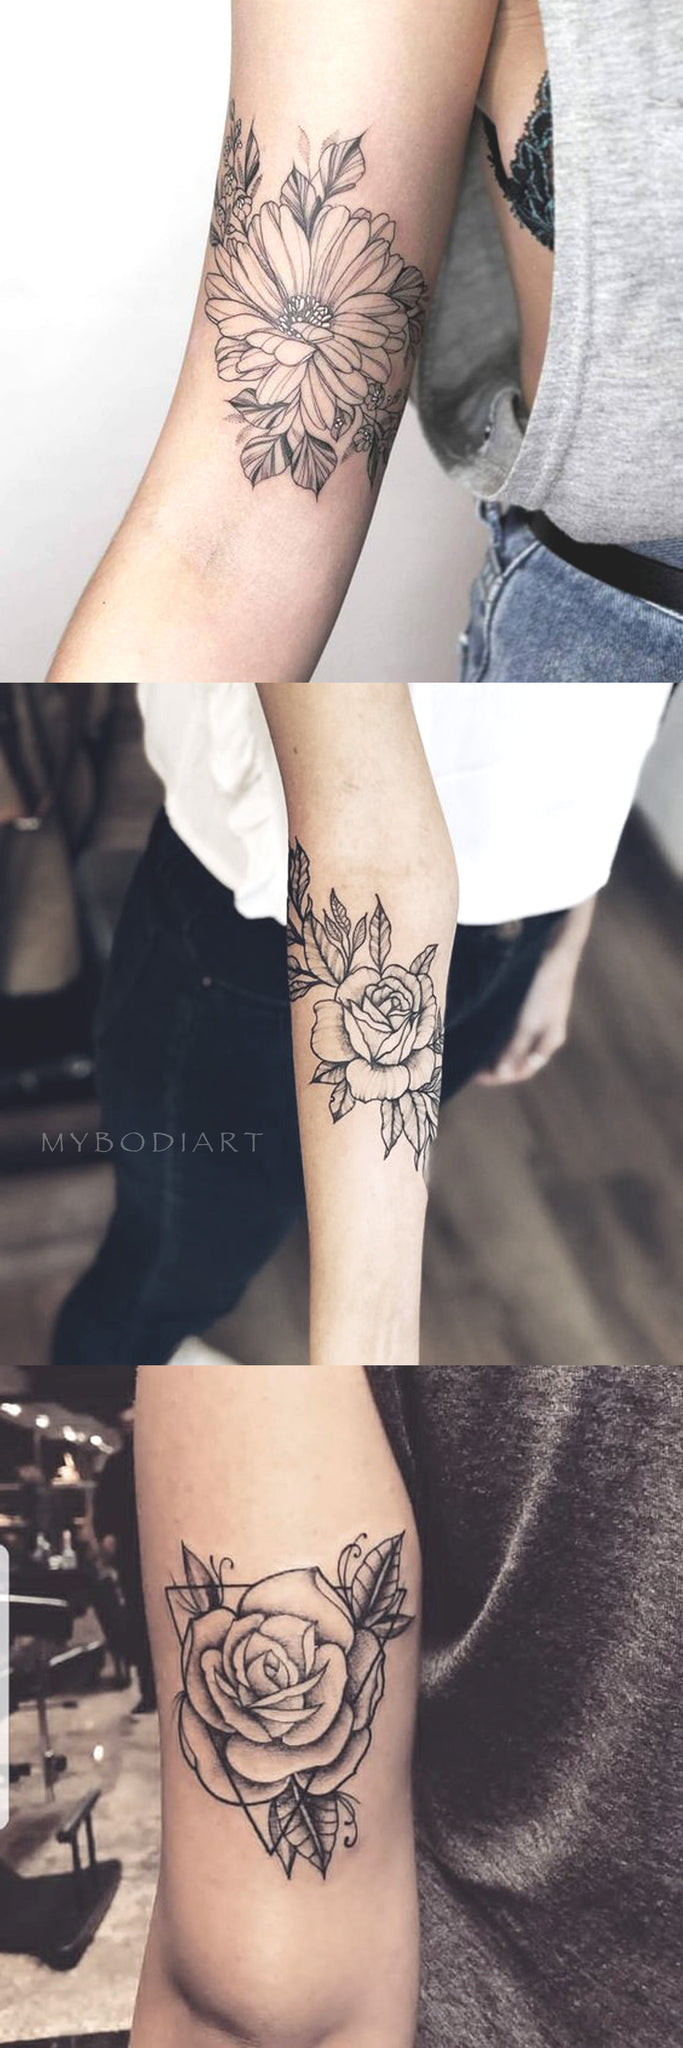 VIntage Traditional Black Outline Rose Sunflower Arm Tattoo Ideas for Women - www.MyBodiArt.com